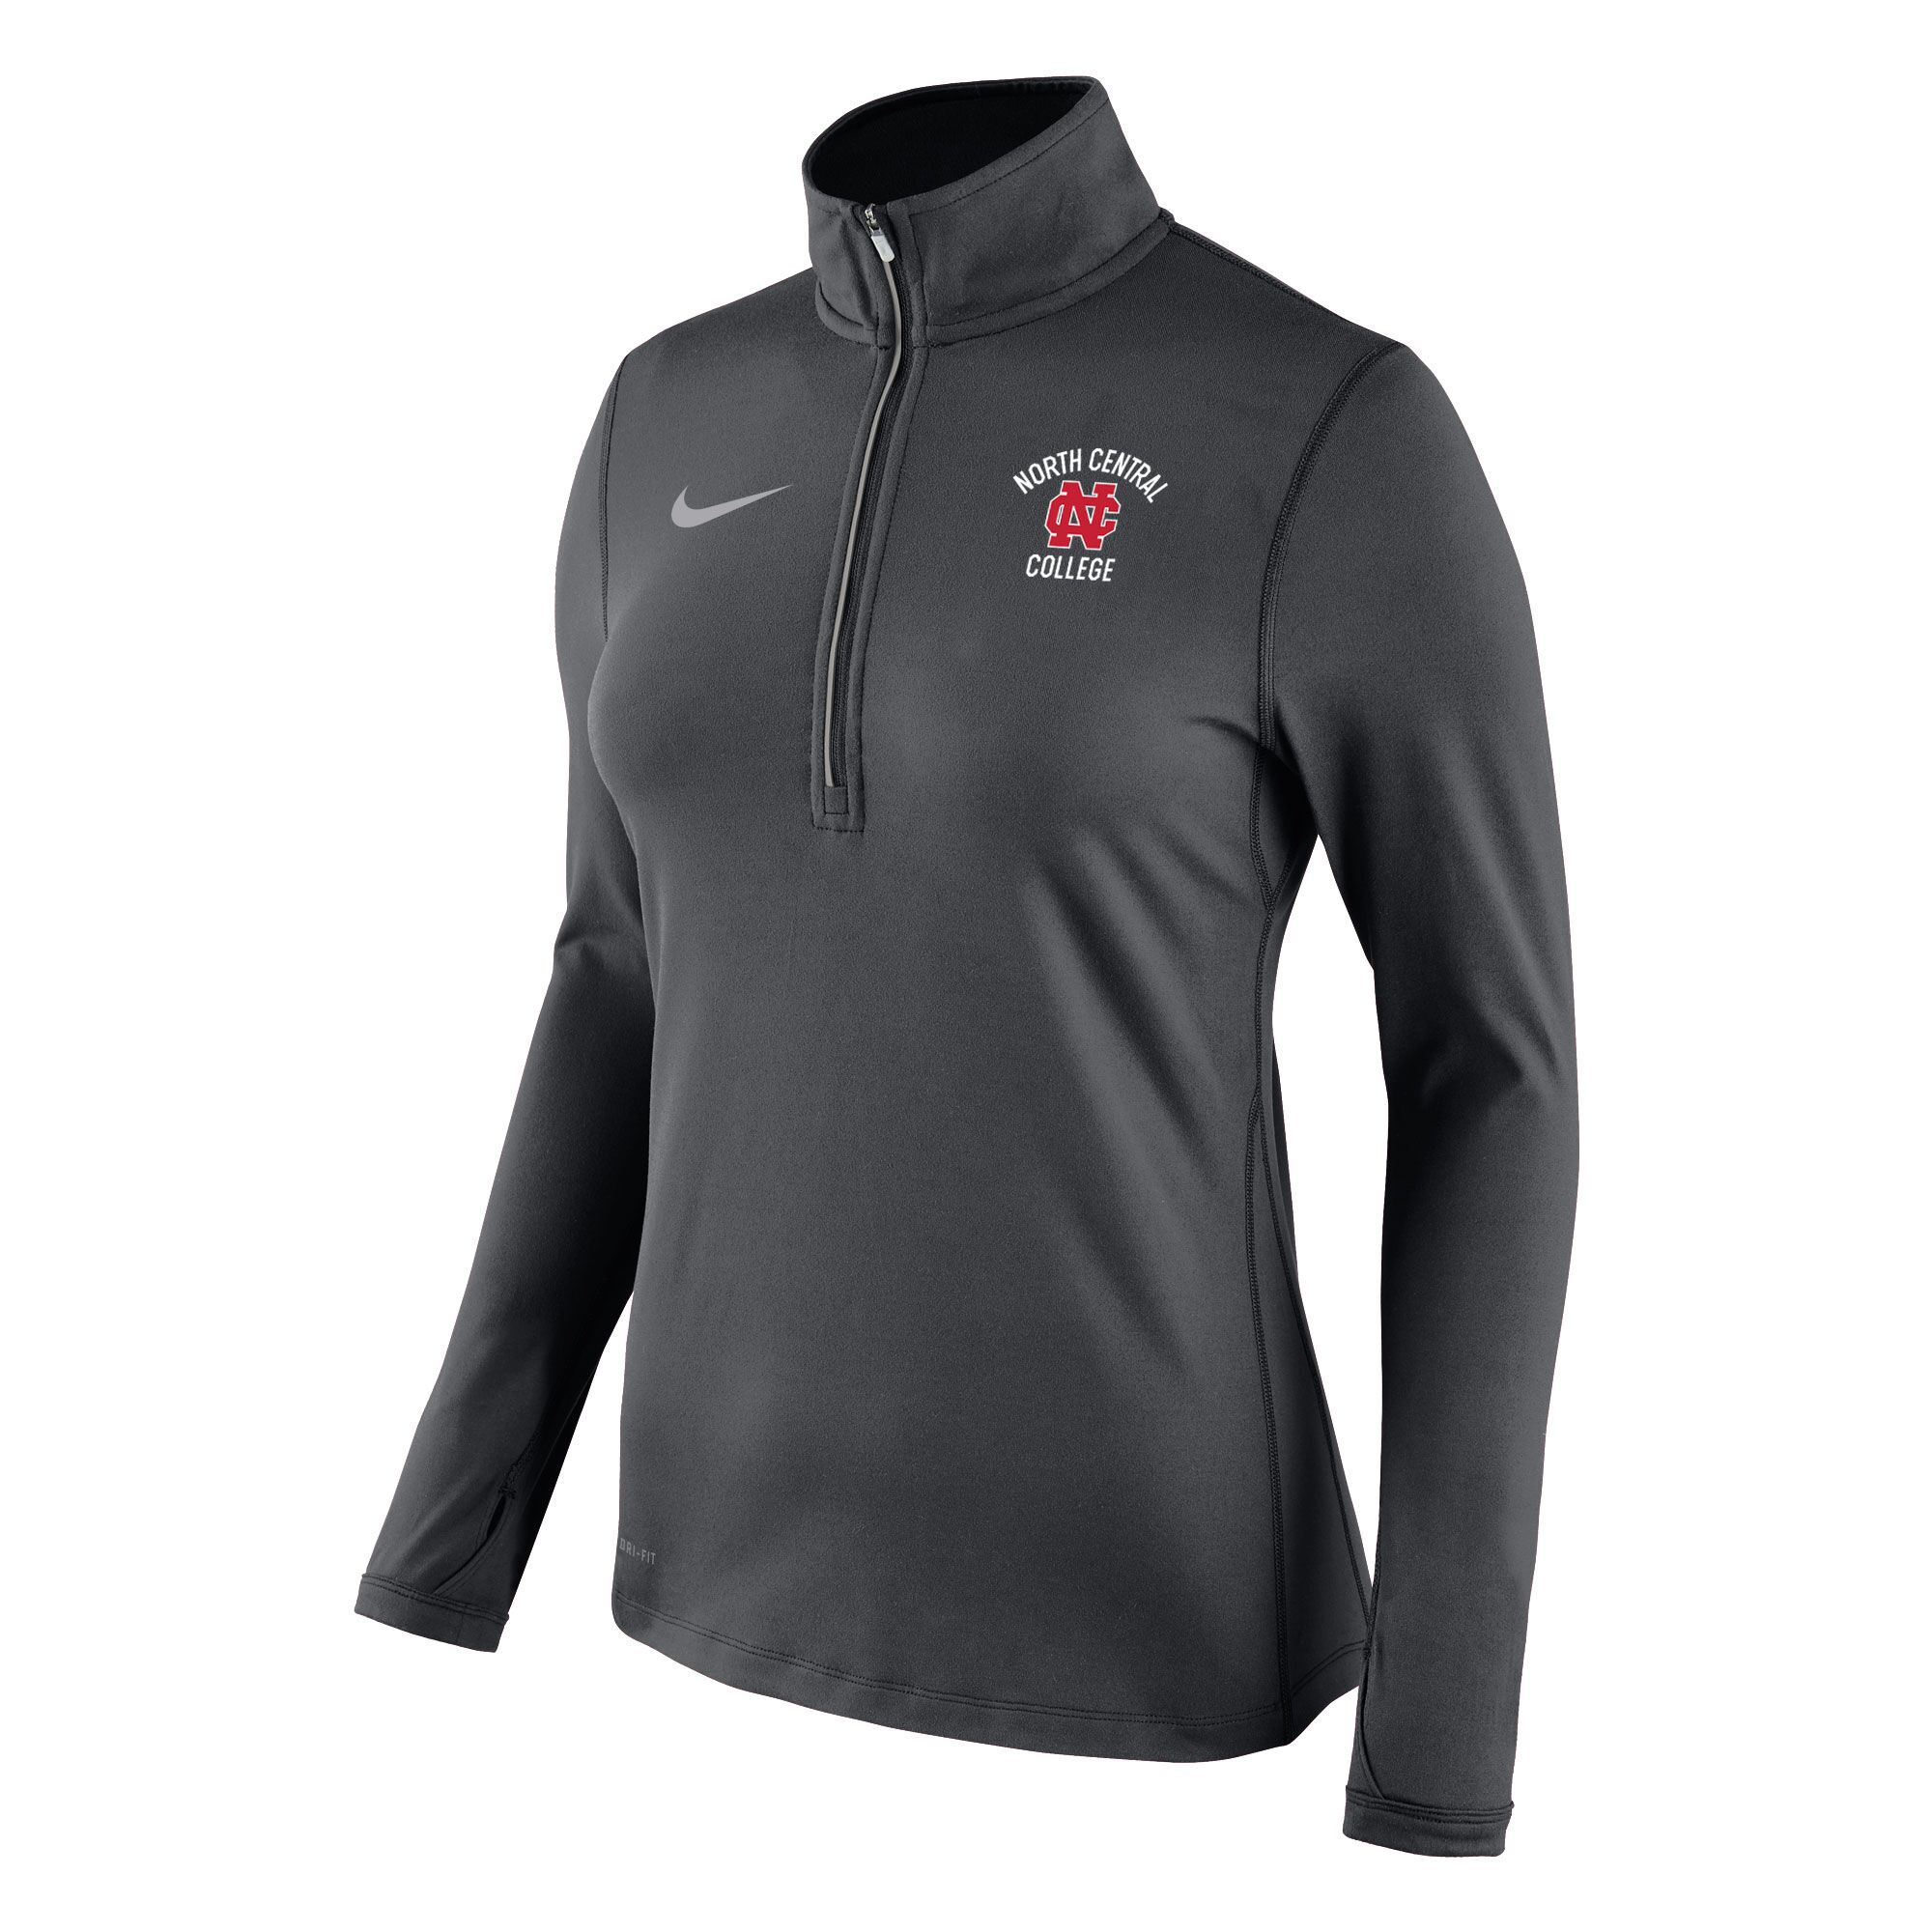 Alternative Image for the North Central College Women's Tailgate Element 1/2 Zip by Nike - Clearance product